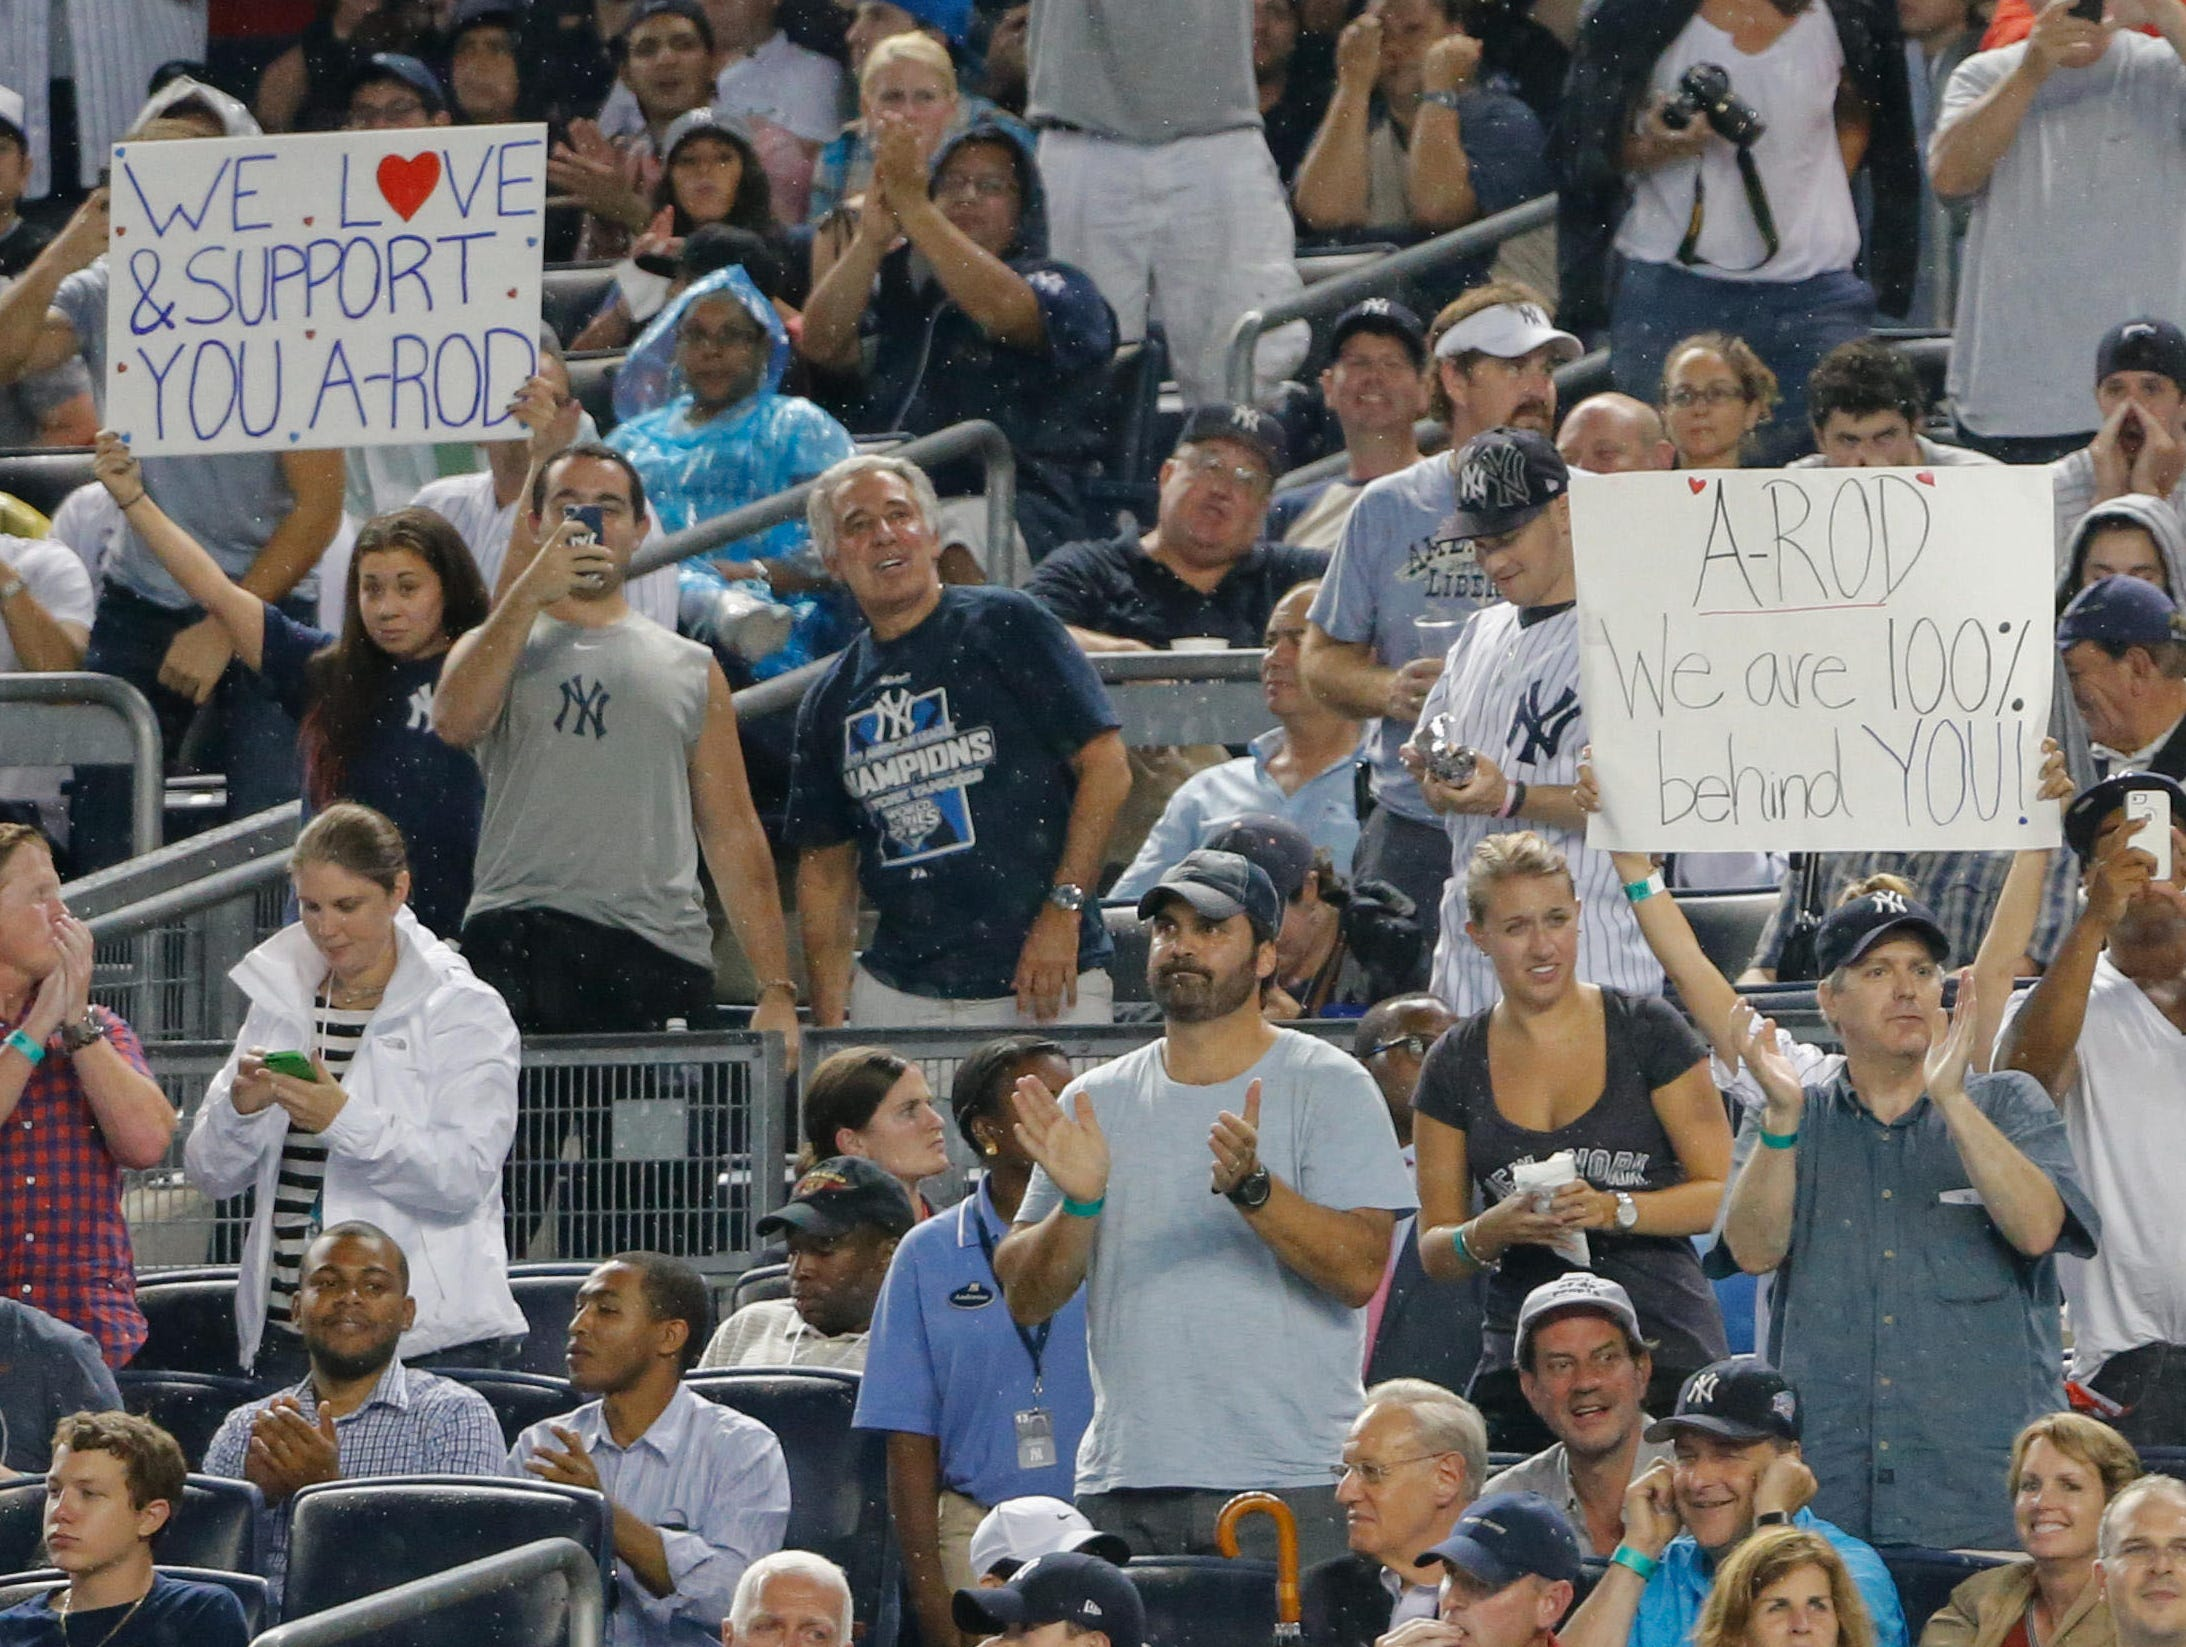 Fans display signs of support for New York Yankees third baseman Alex Rodriguez during the game against the Detroit Tigers at Yankee Stadium.